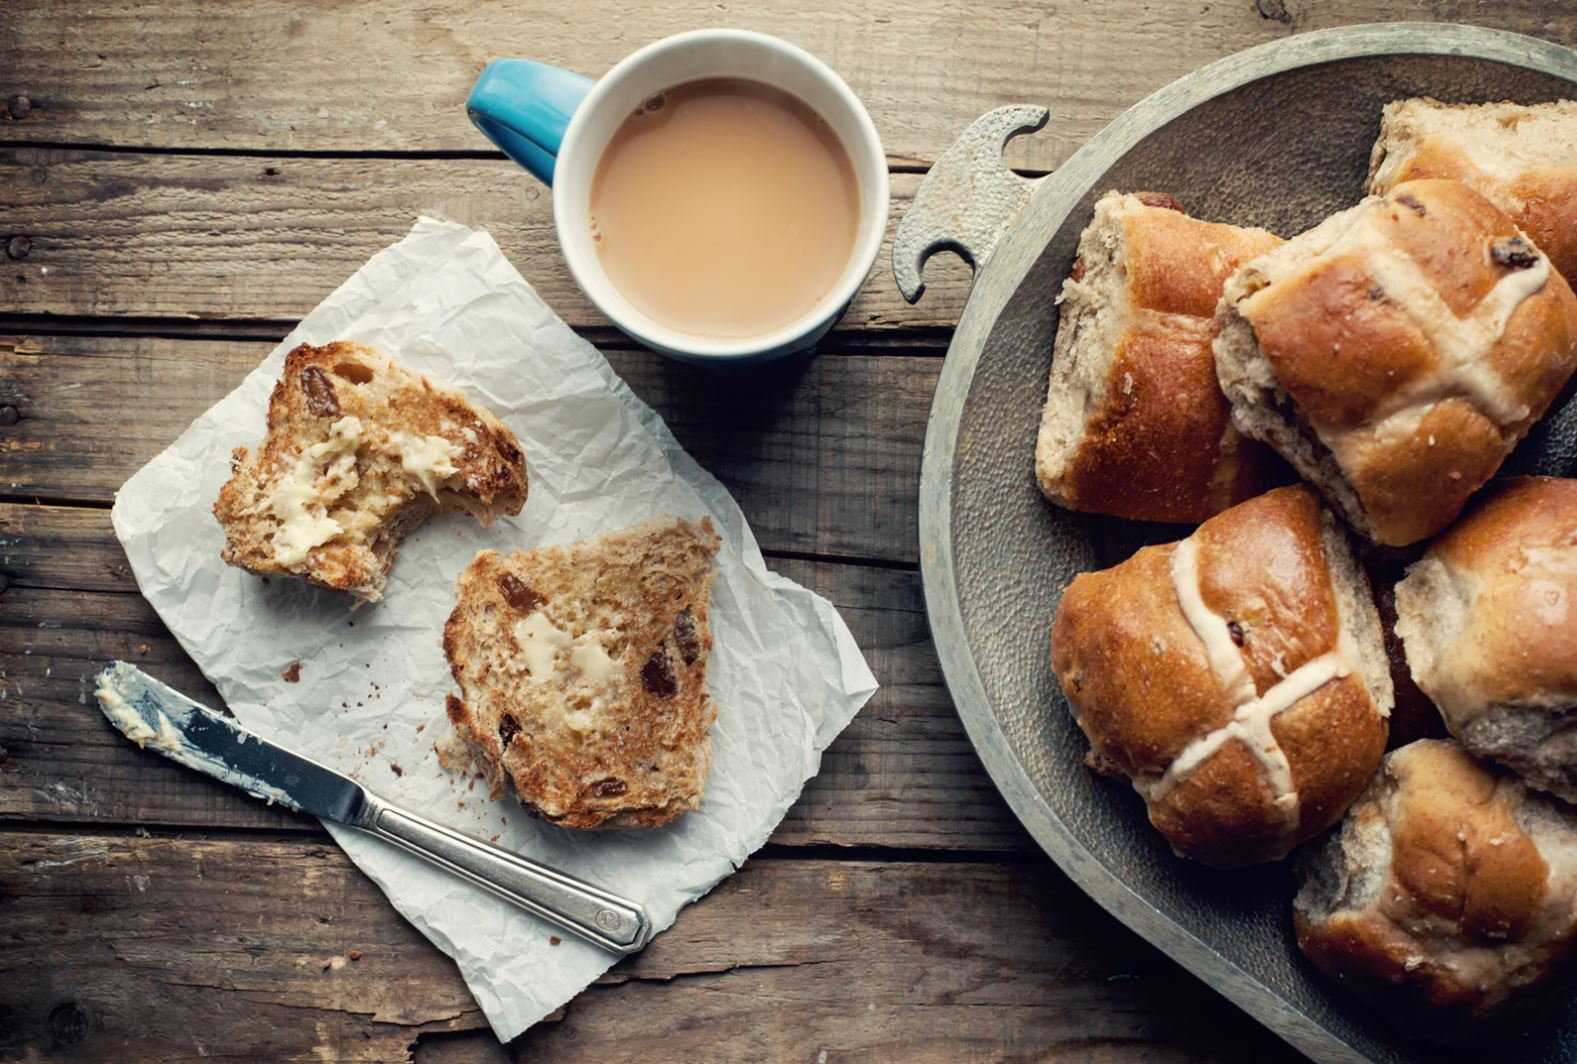 It's hot cross bun season!